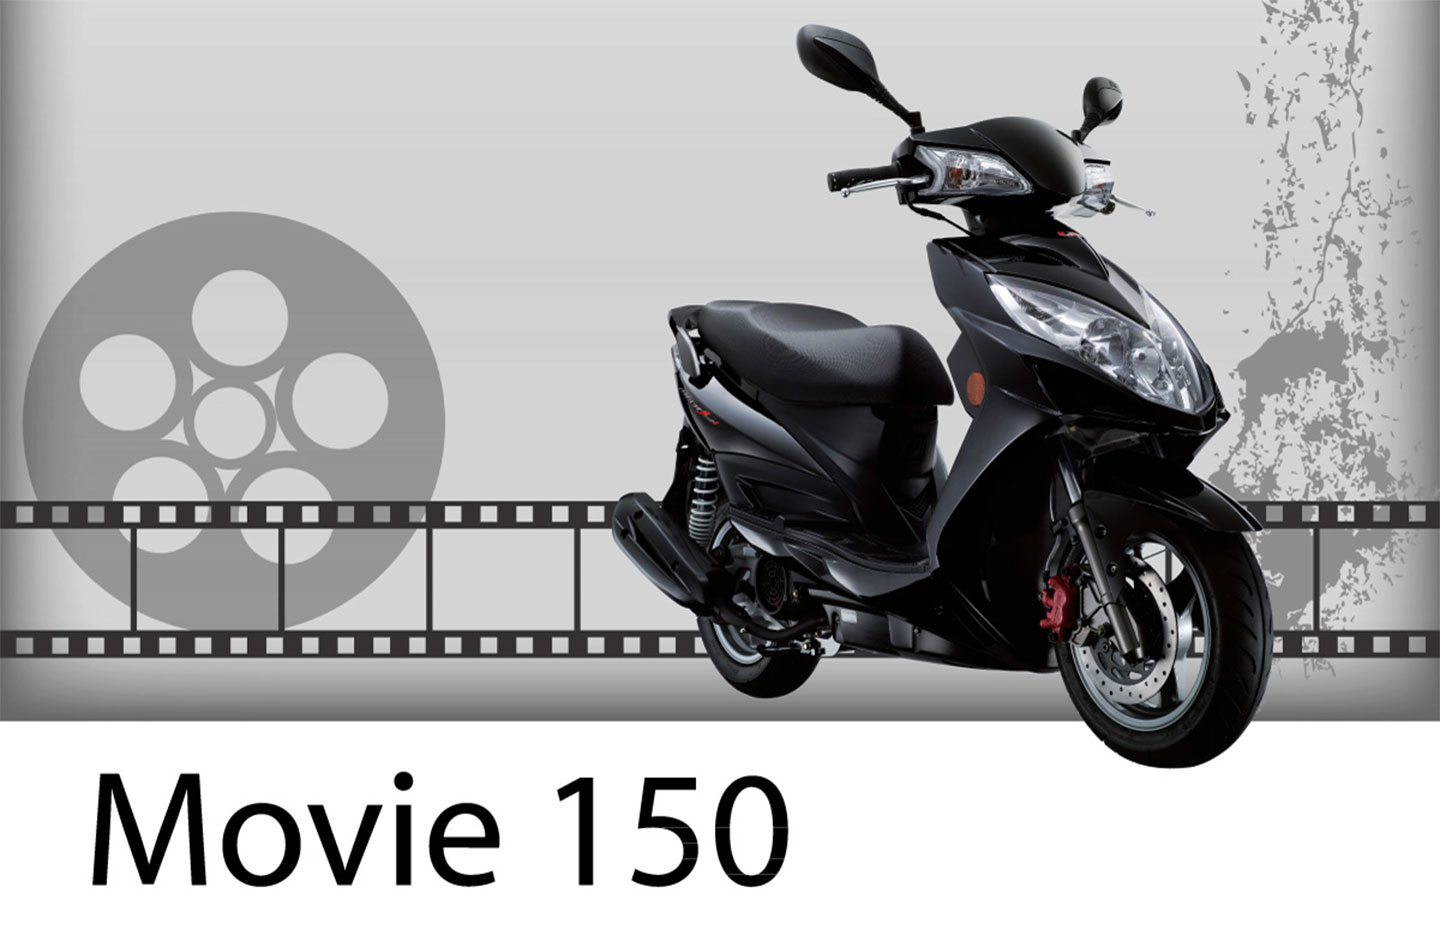 Kymco Movie 150 2003 images #101461